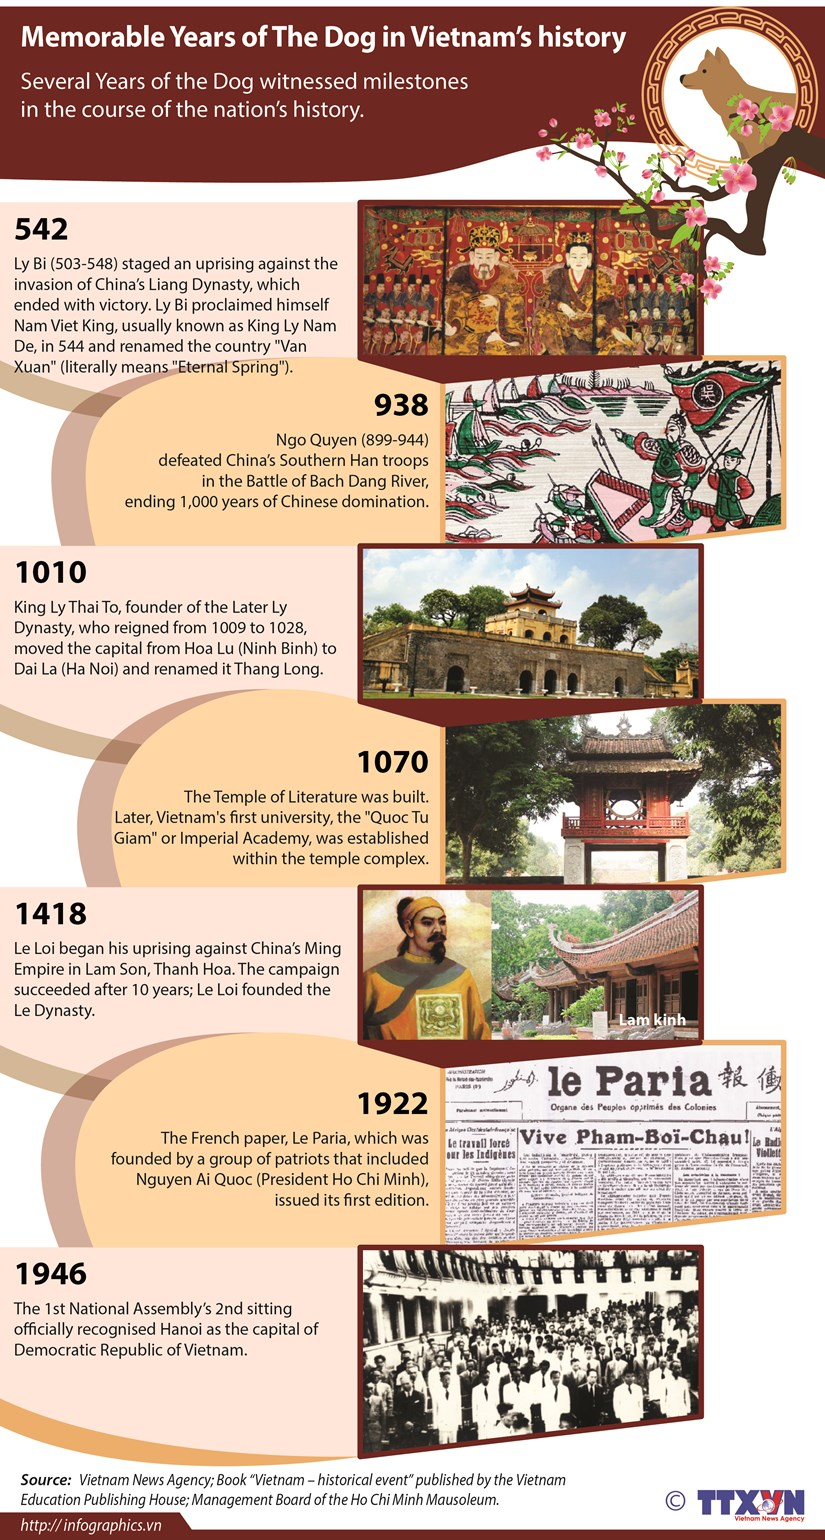 Memorable Years of The Dog in Vietnam's history hinh anh 1